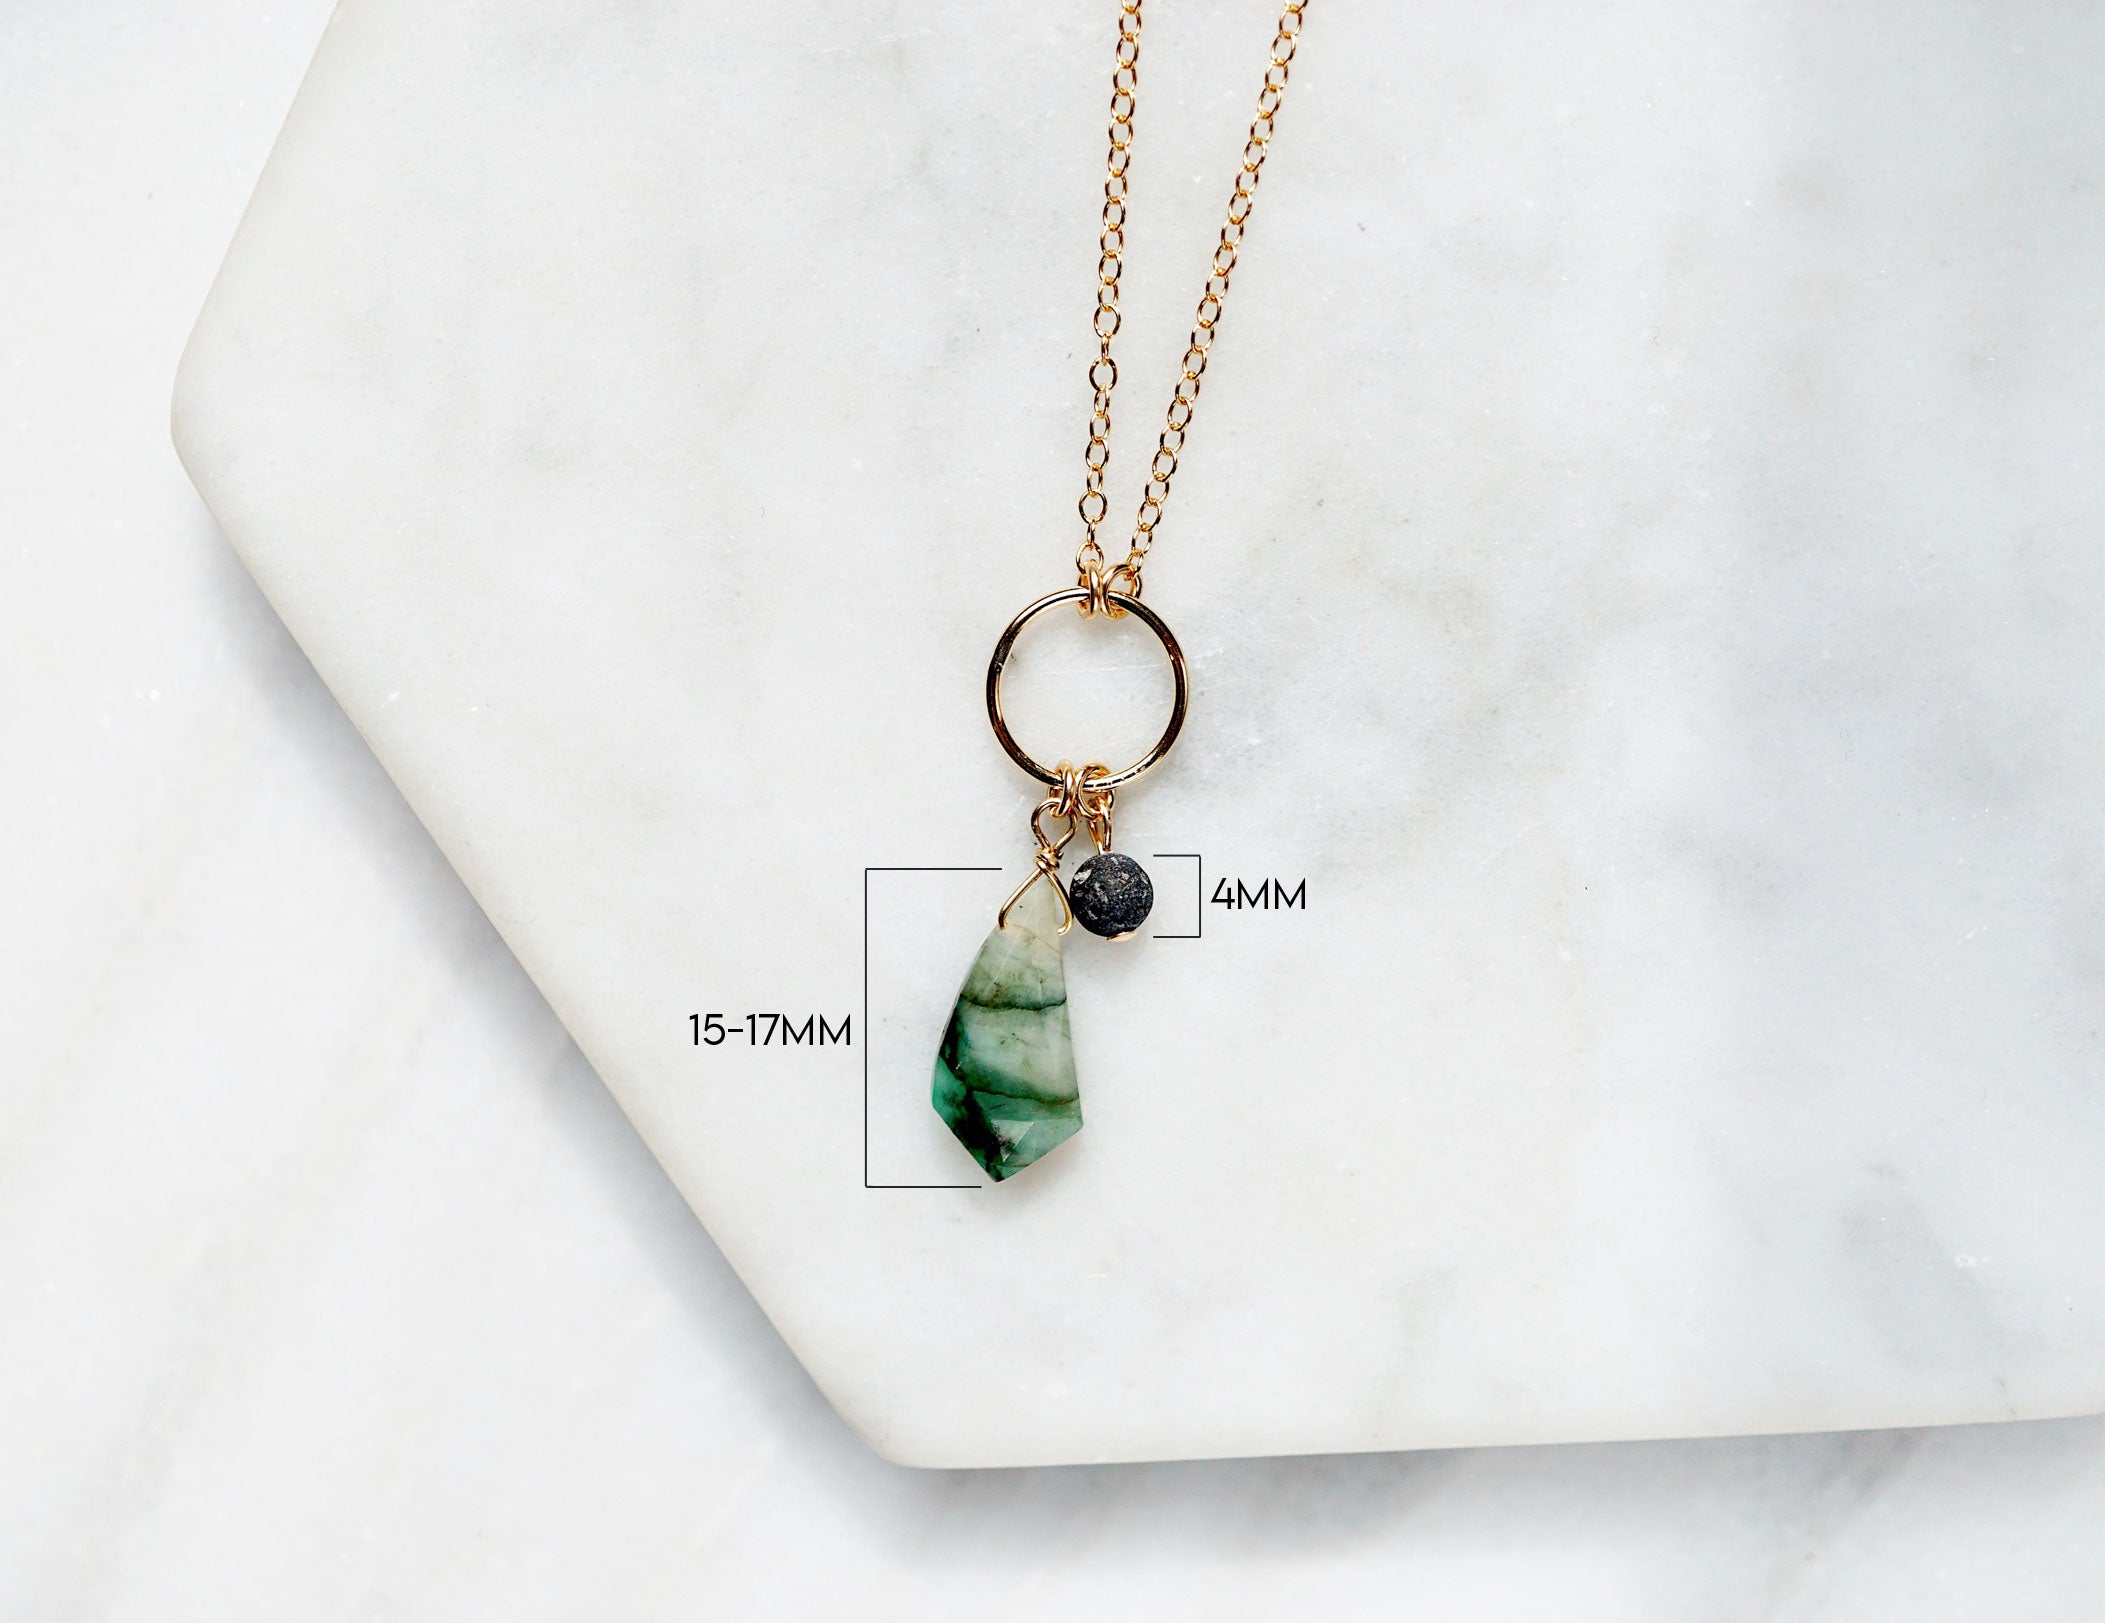 NEW Emerald & Lava Aromatherapy Necklace, May Birthstone